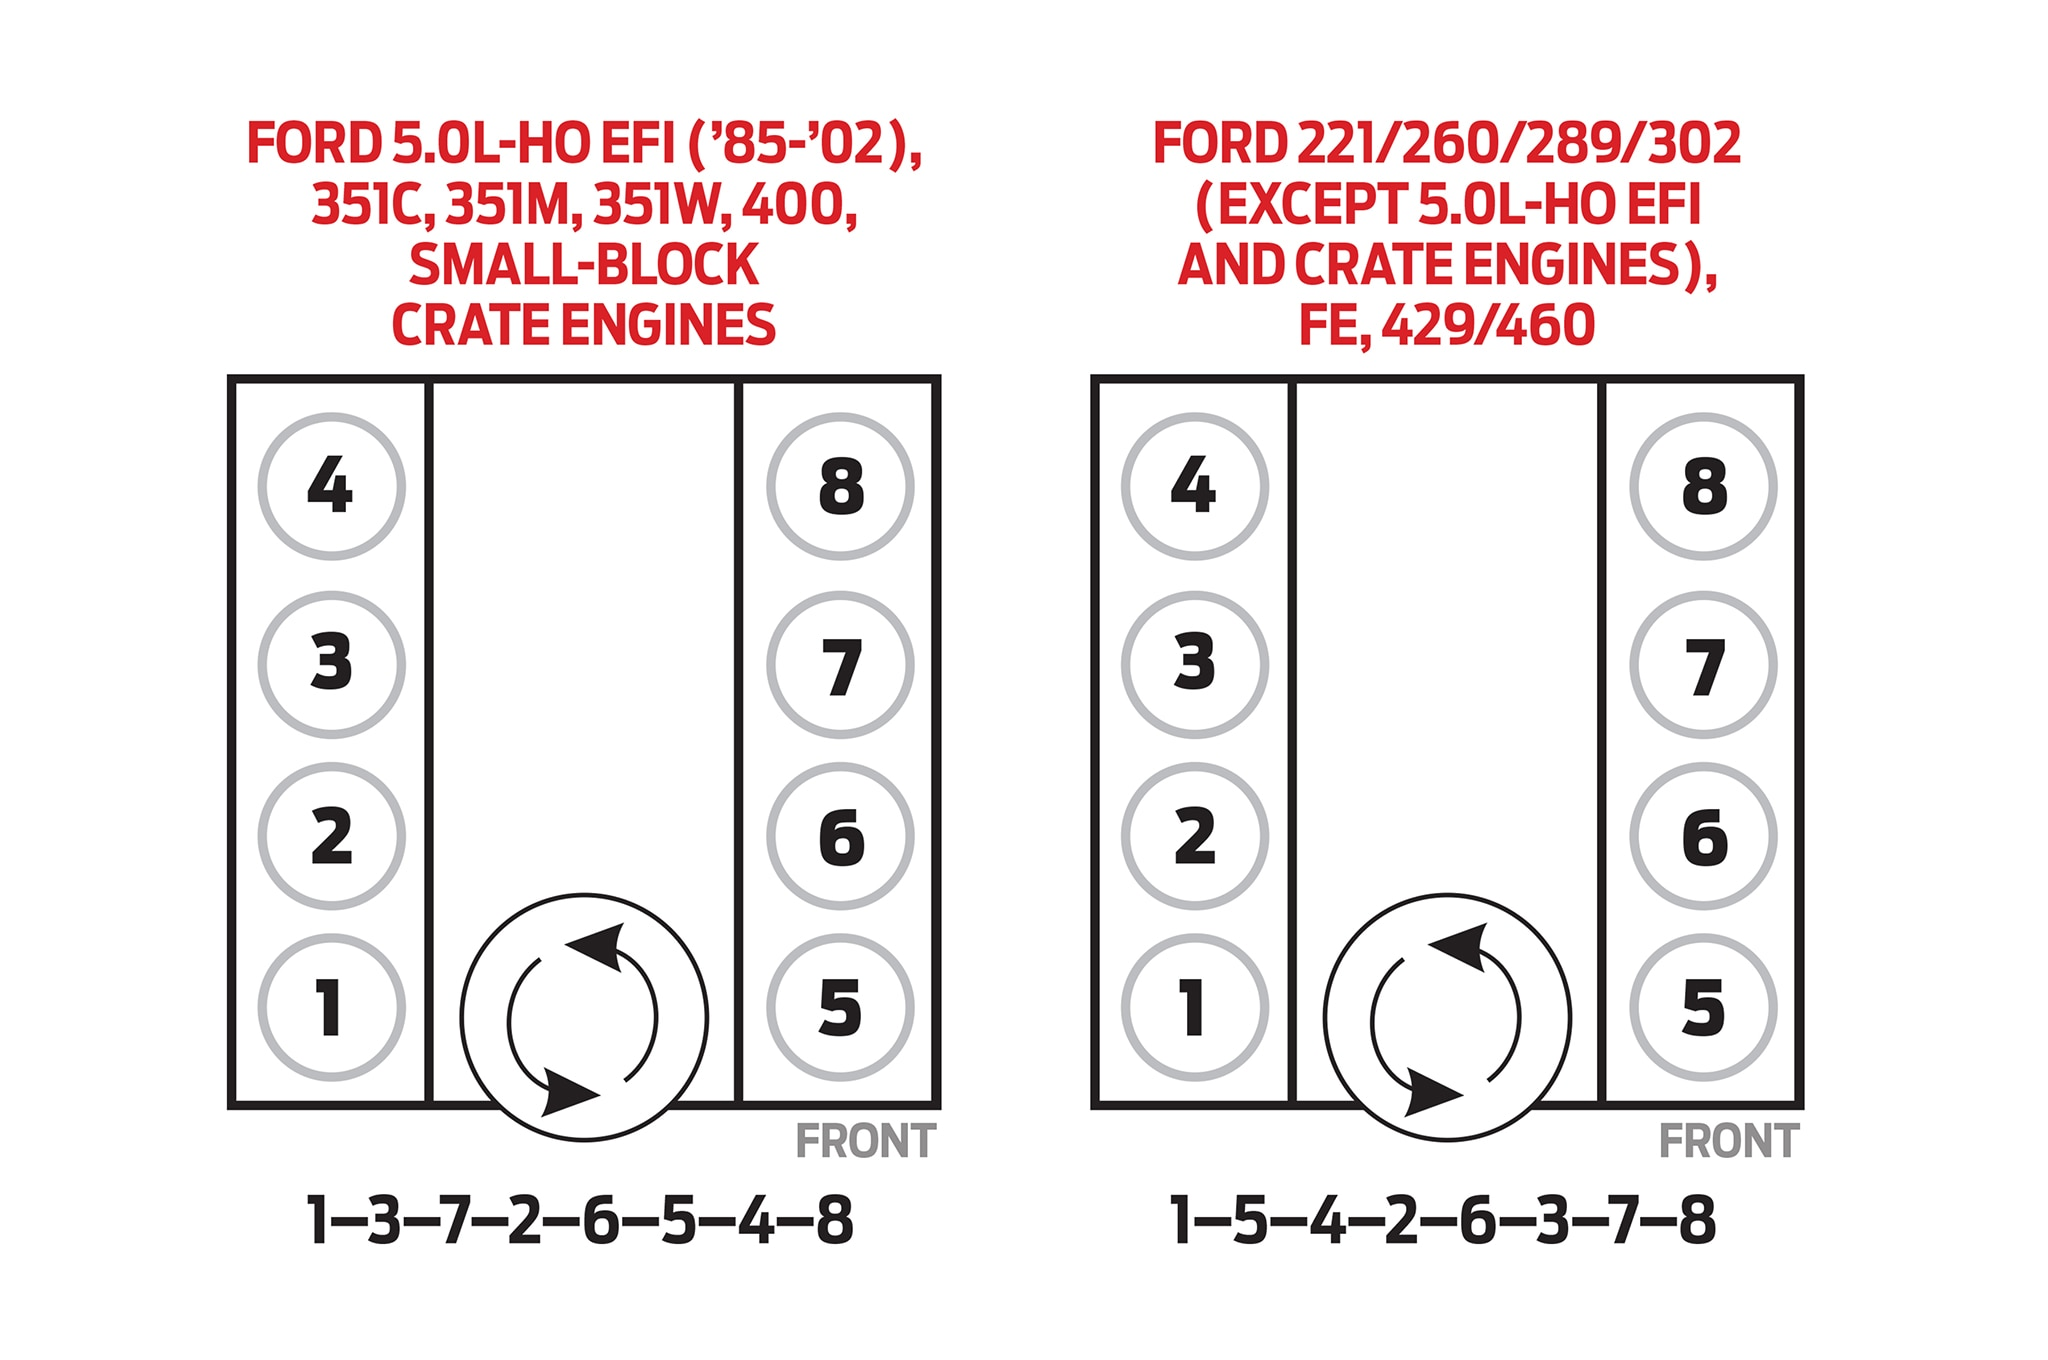 medium resolution of ford ignition firing order 302 engine ford engine problems and ford crate engine firing order diagram wiring